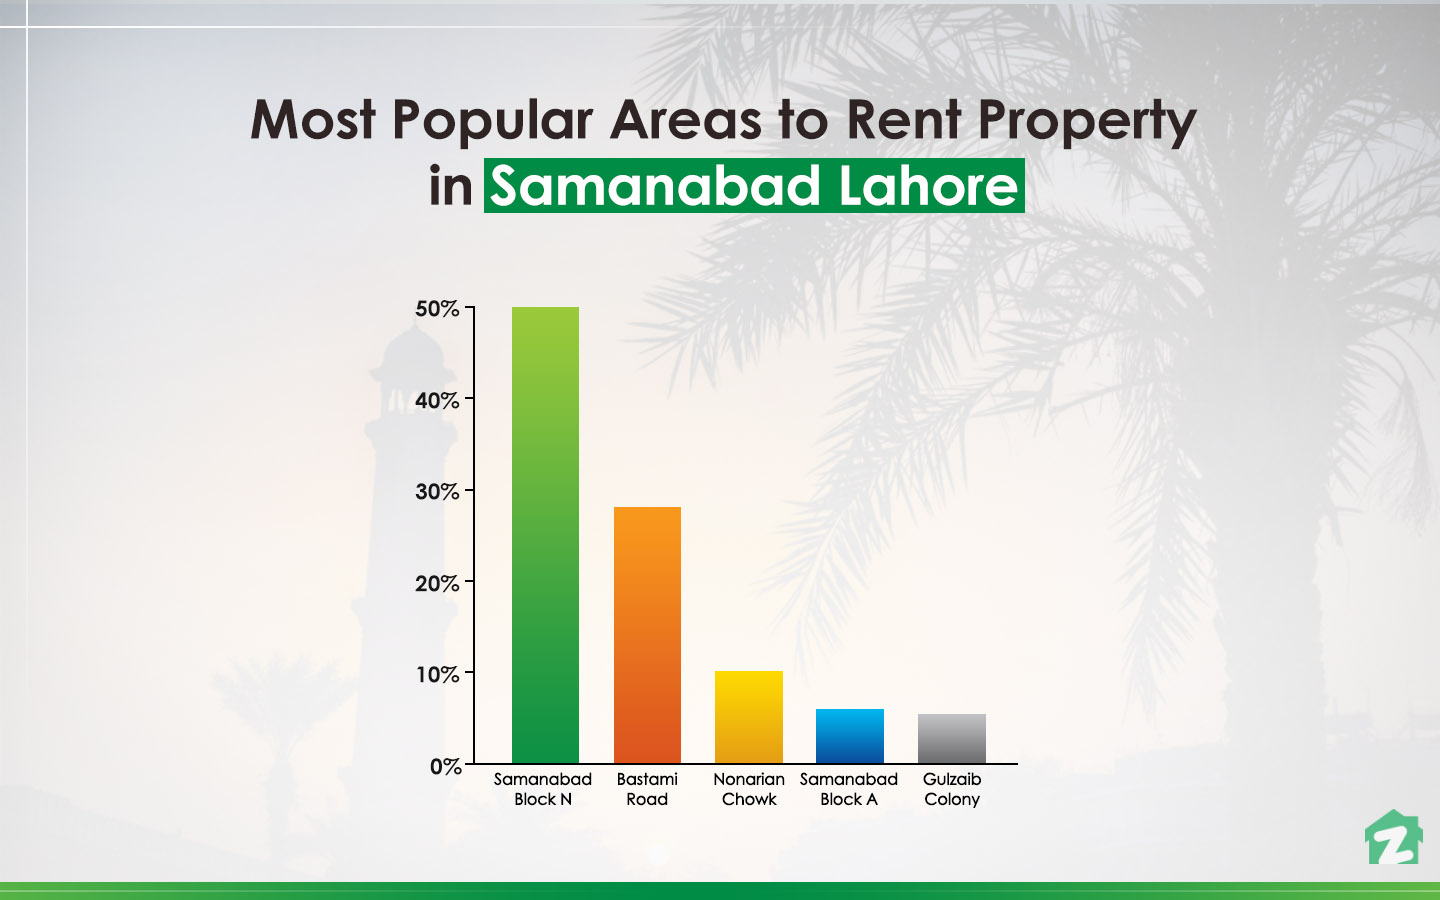 When it comes to rental-trends, property seekers were more interested in Samanabad – Block N